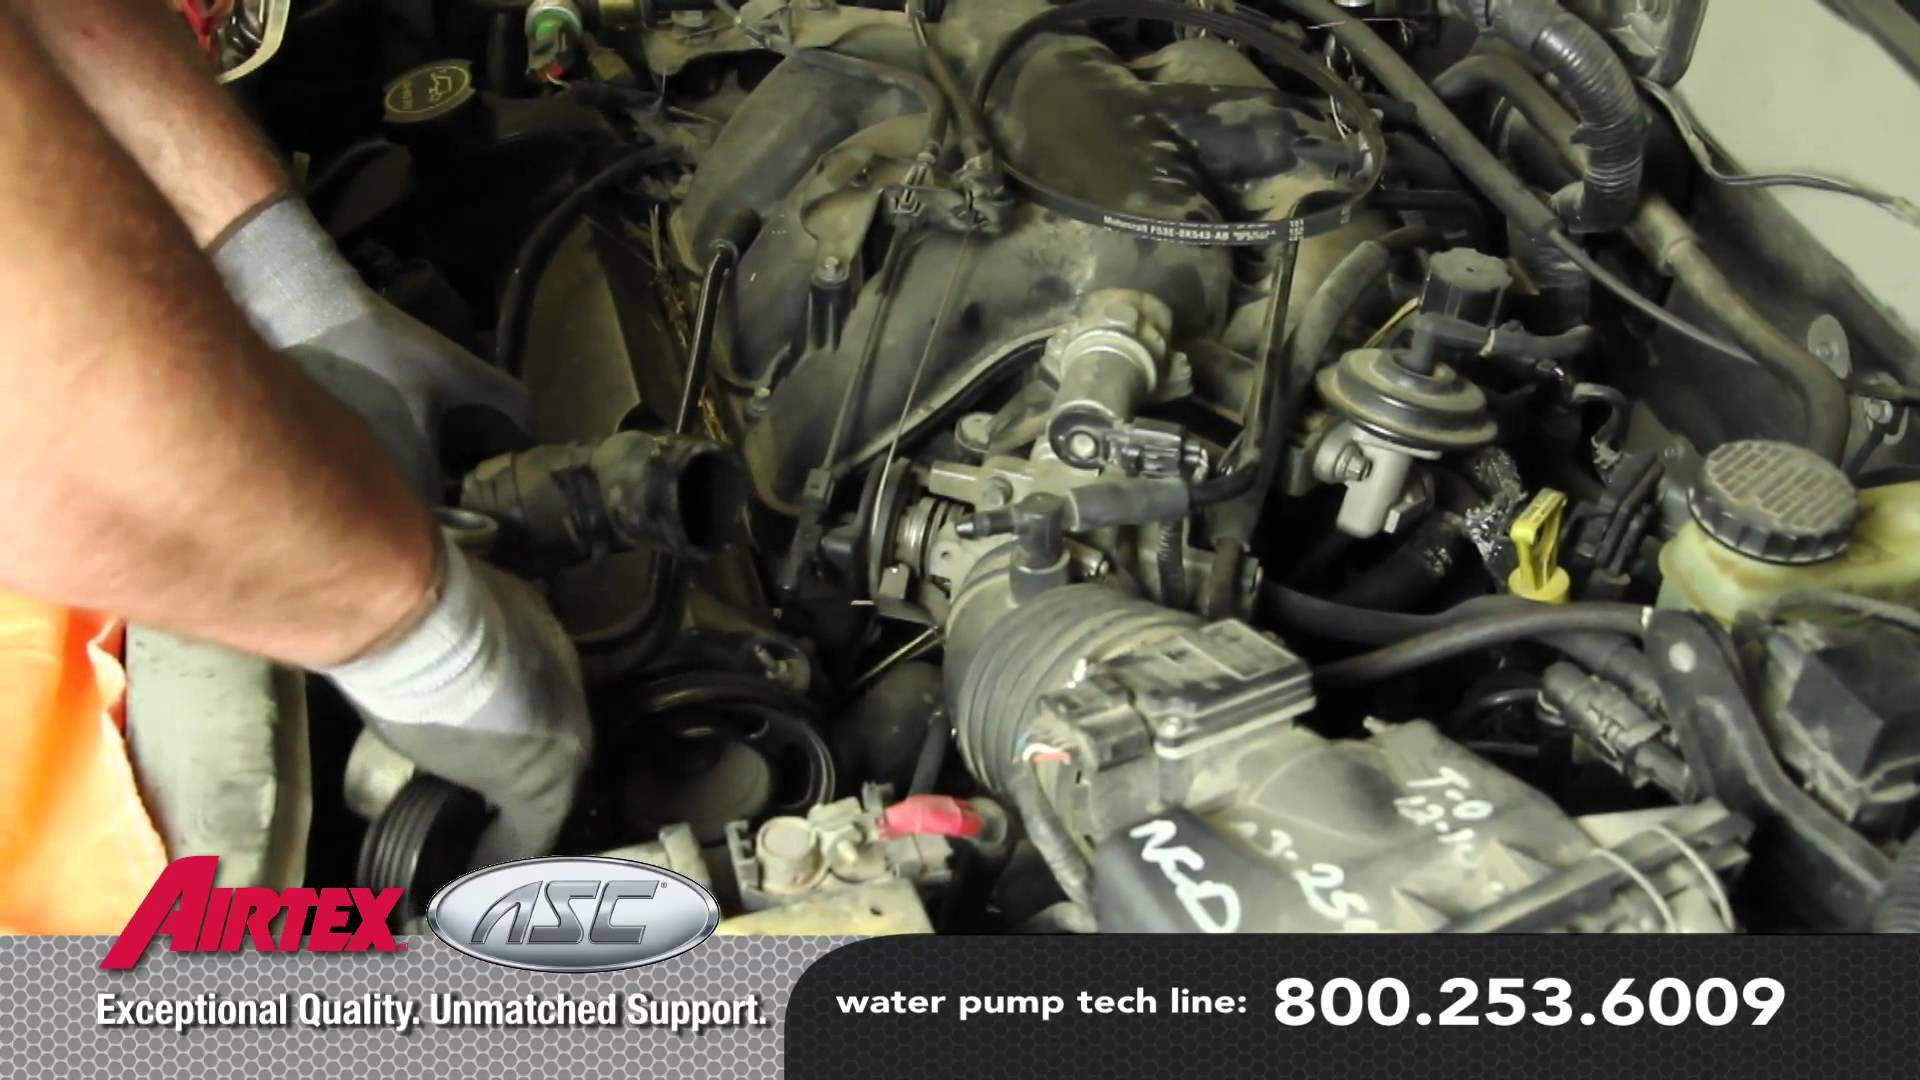 Ford Contour Engine Diagram 2000 Mercury Cougar Serpentine Belt Replacement How To Install A Water Pump 3 0l V6 Wp